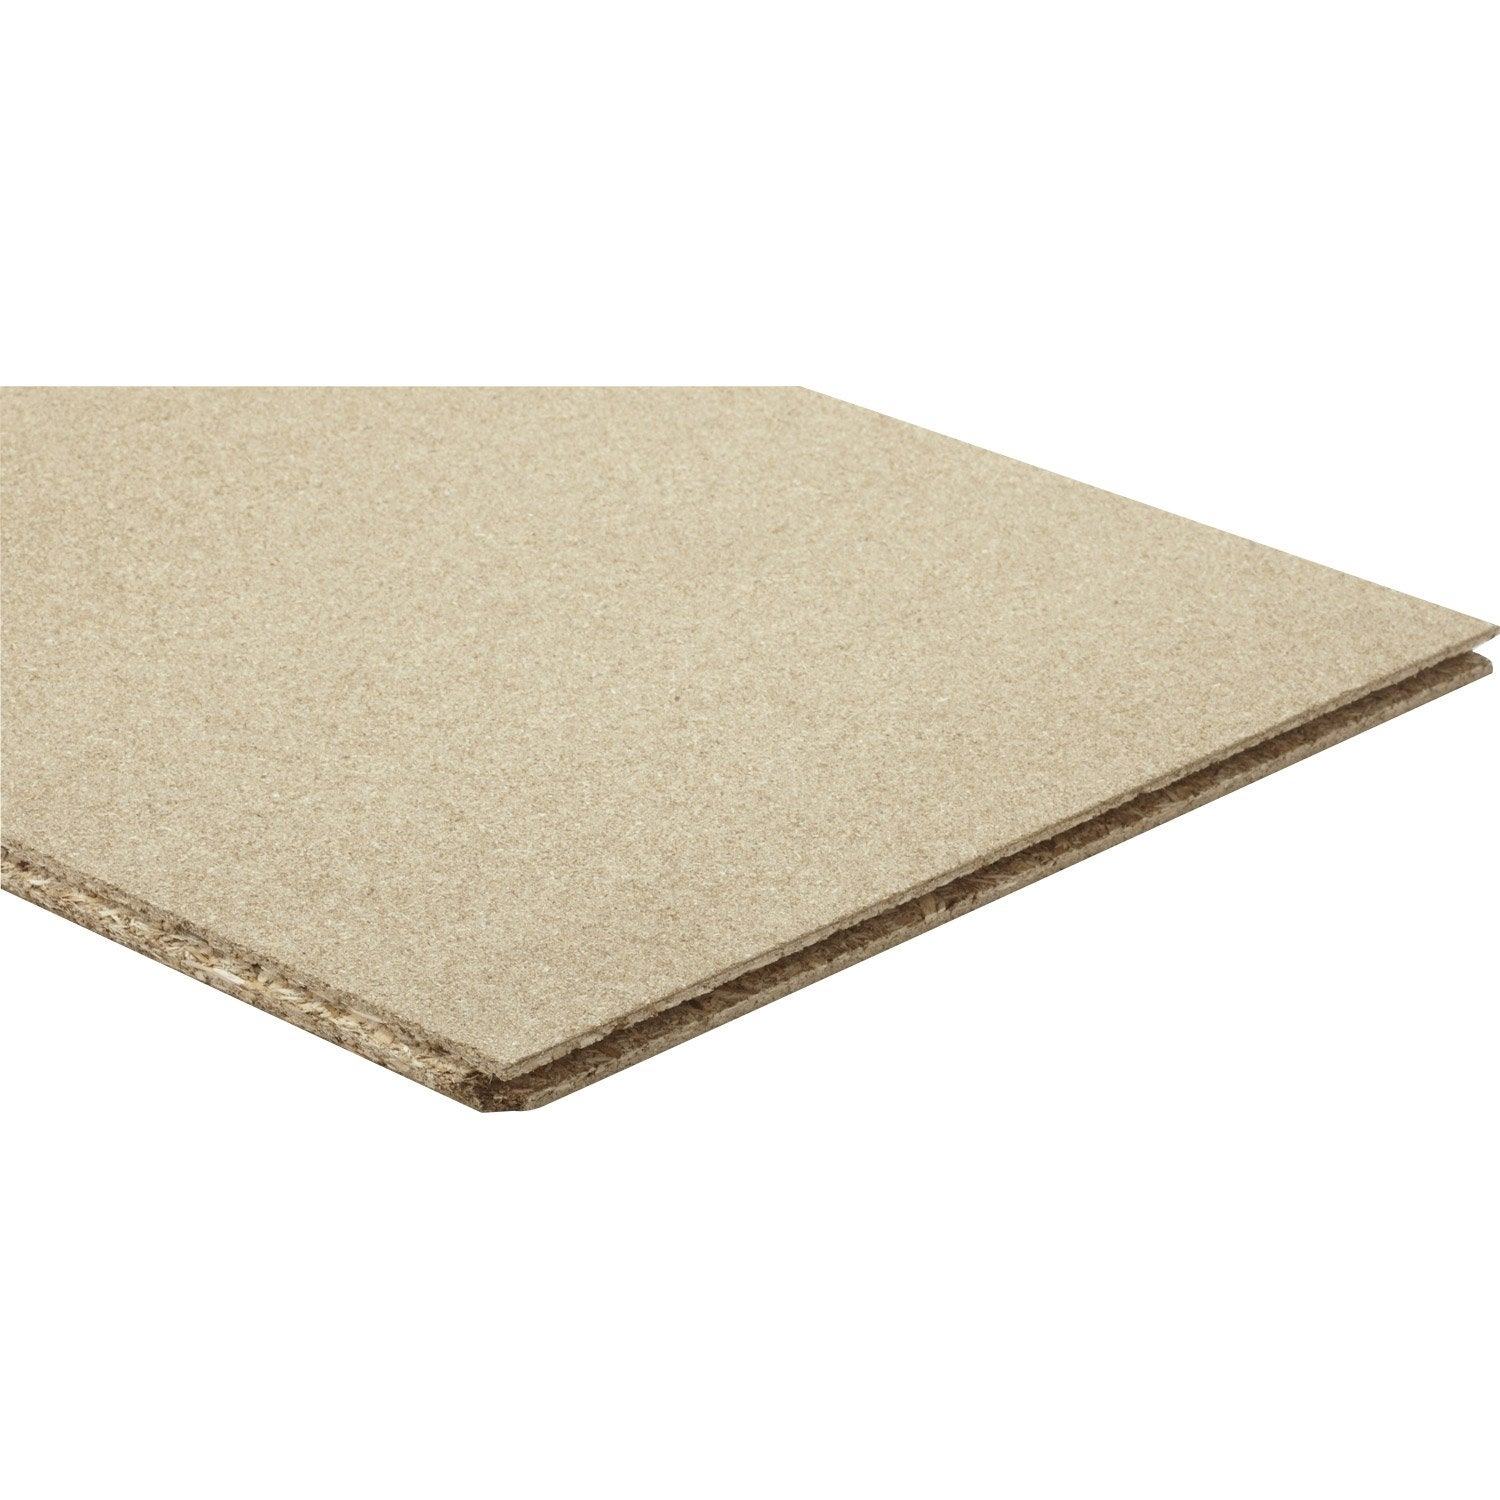 Dalle d 39 agencement agglom r naturel mm x x cm leroy - Dalle de plancher osb leroy merlin ...